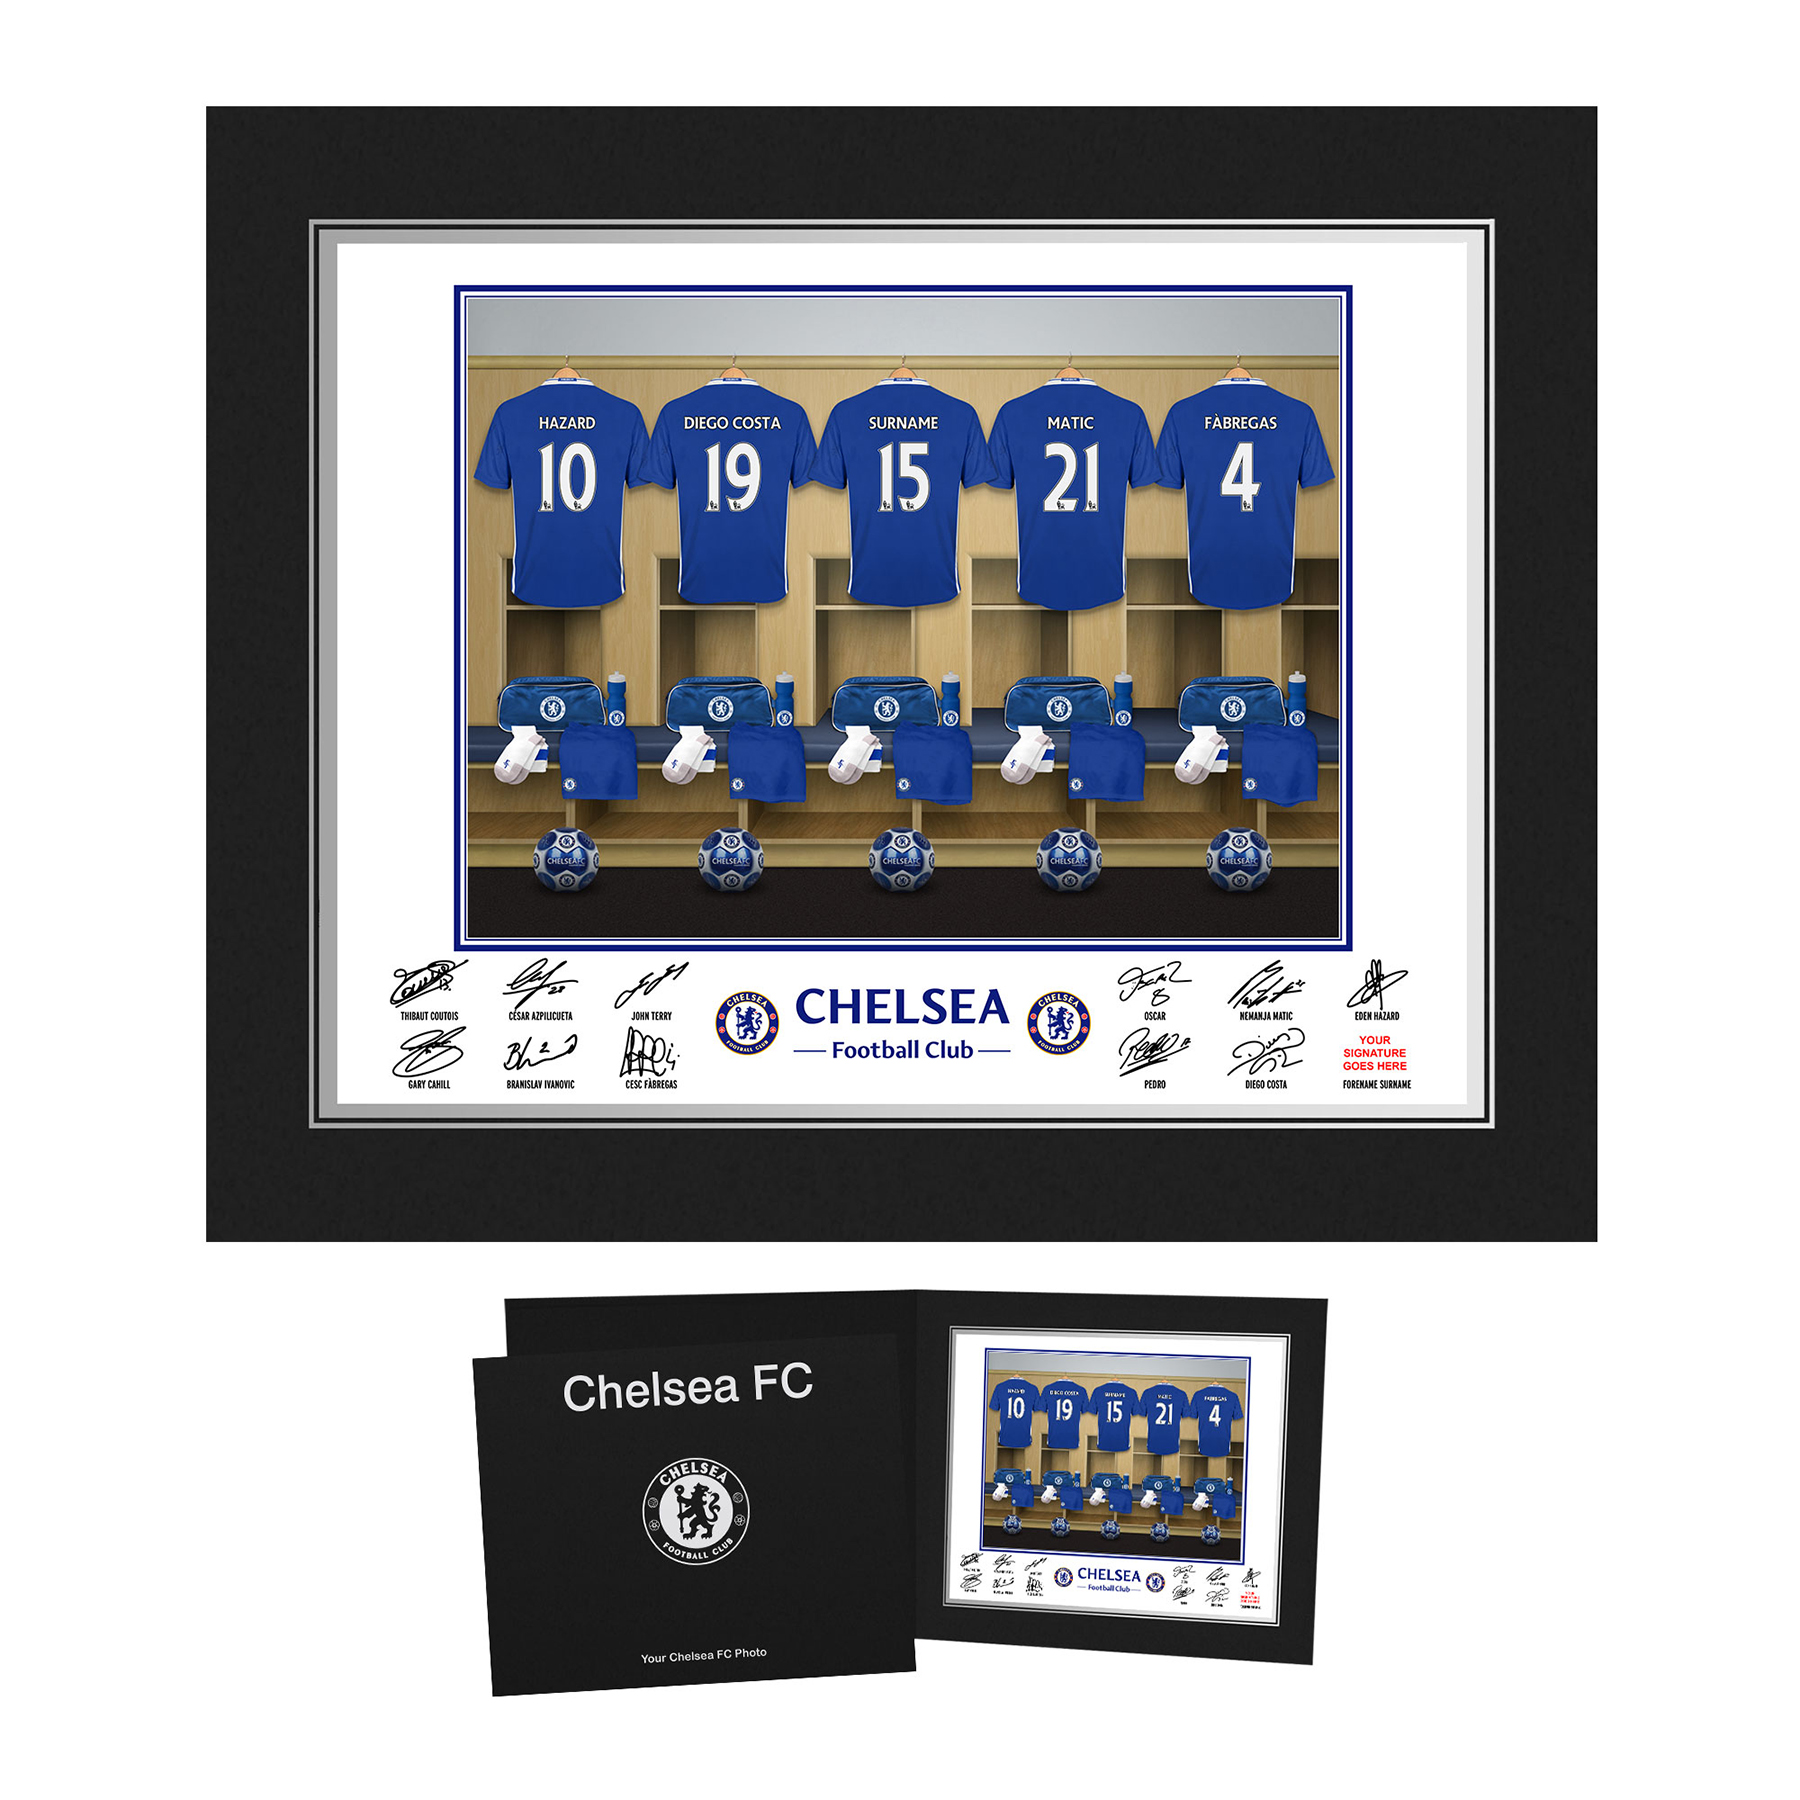 Chelsea Personalised Dressing Room Photo in Presentation Folder